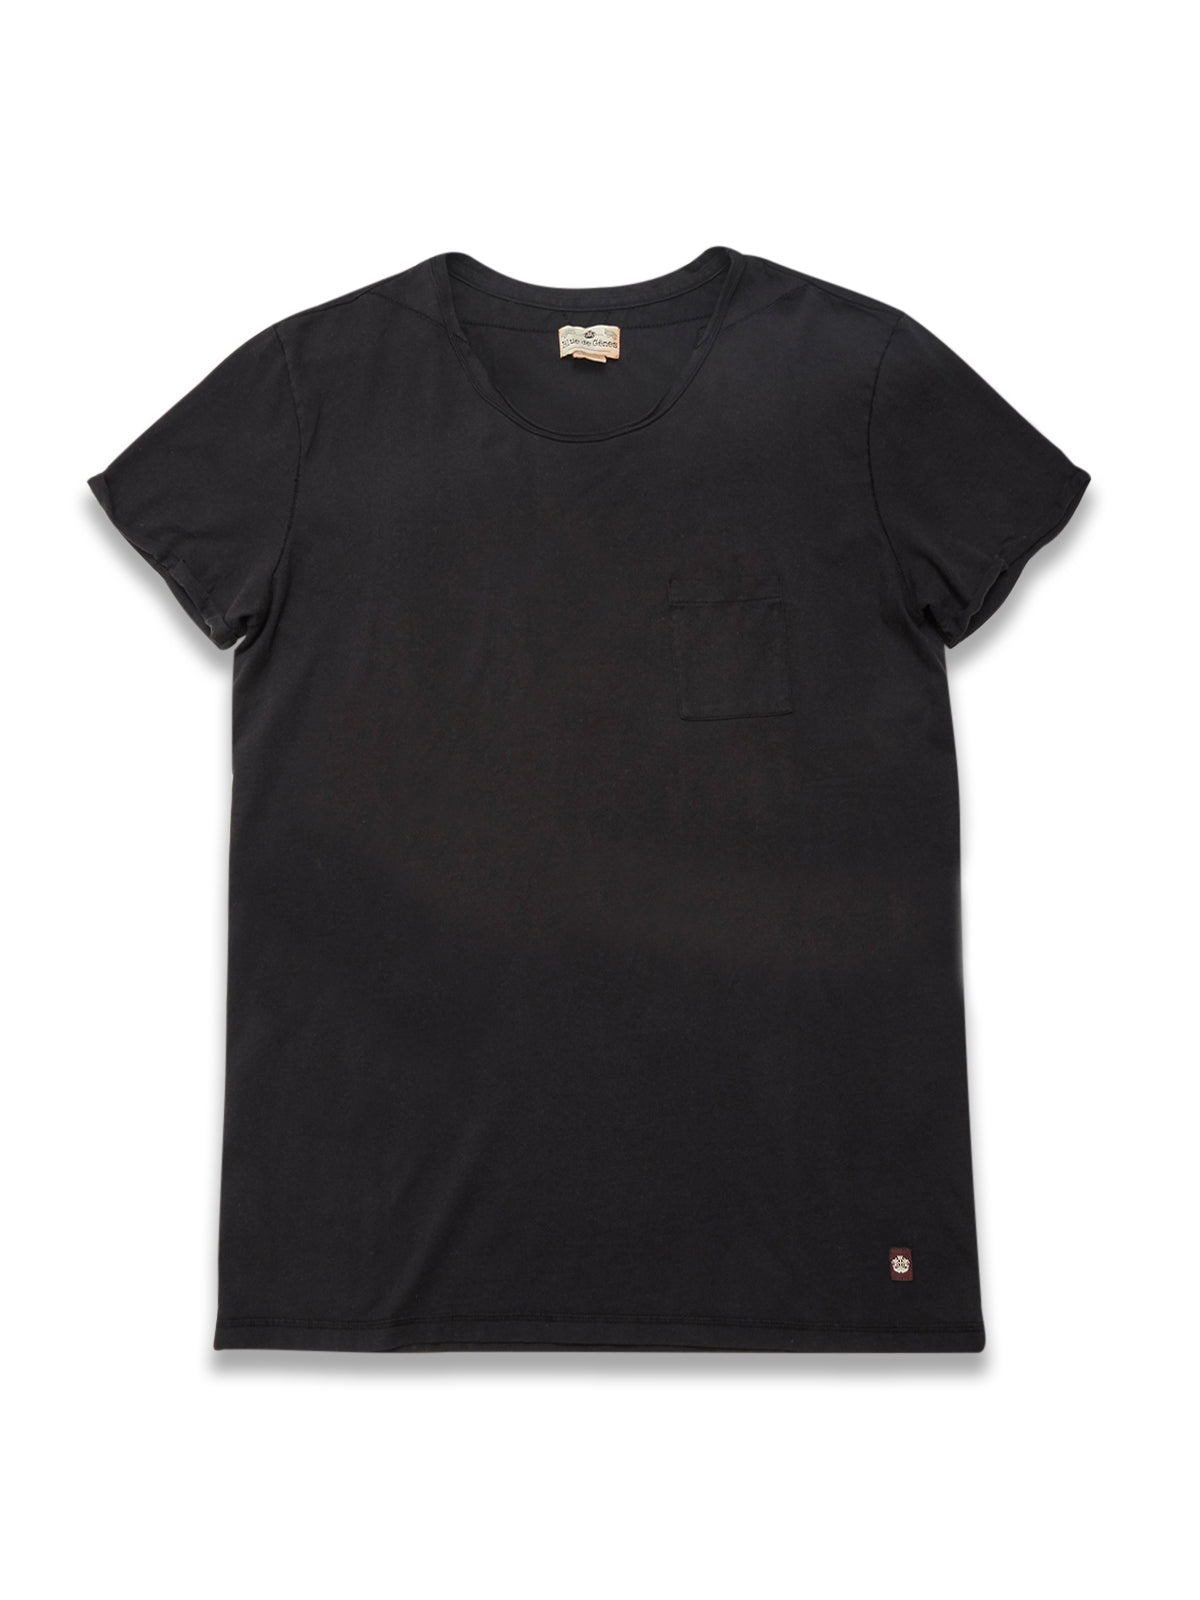 Sagi Shortsleeve T-Shirt Black